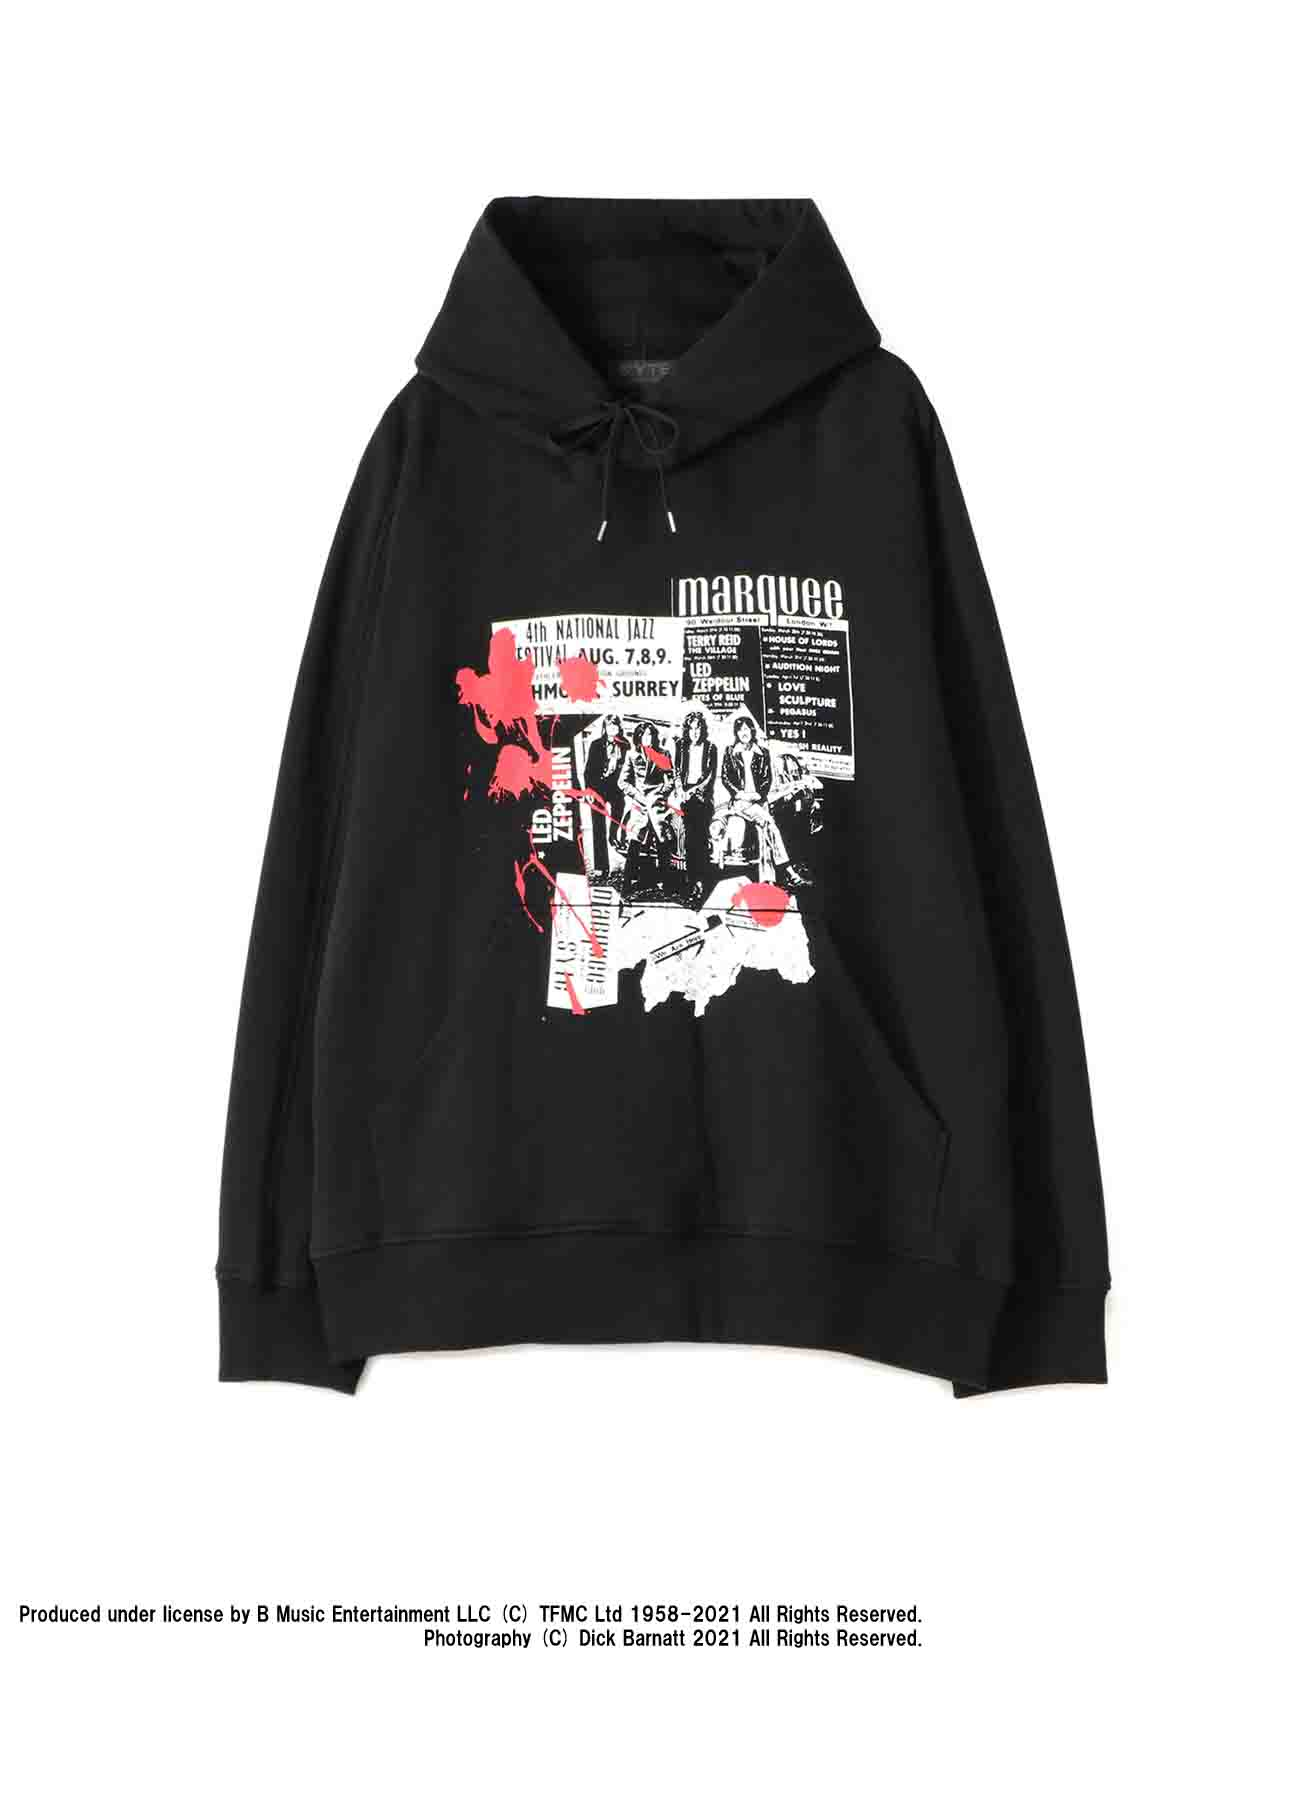 S'YTE × marquee club(TM) French Terry Stitch Work Photograph Hoodie